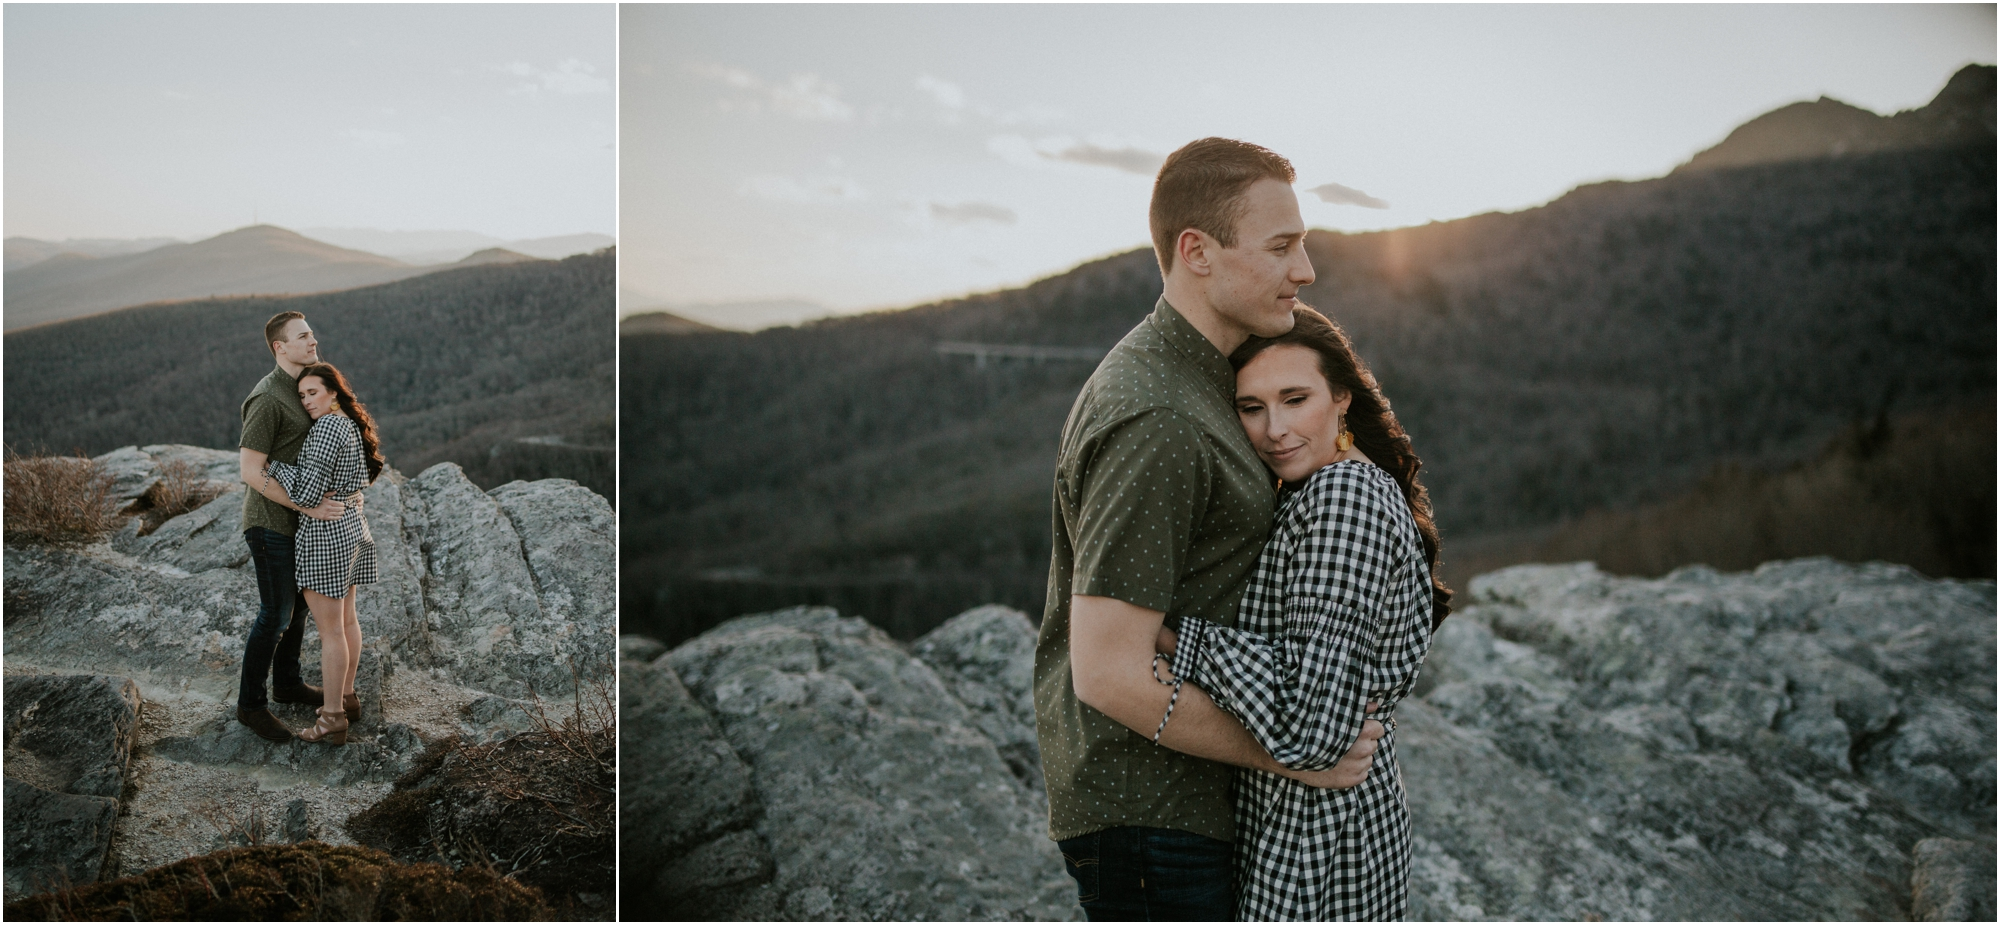 blue-ridge-parkway-engagement-session-north-carolina-boone-blowing-rock-northeast-tennessee-katy-sergent-photography_0018.jpg